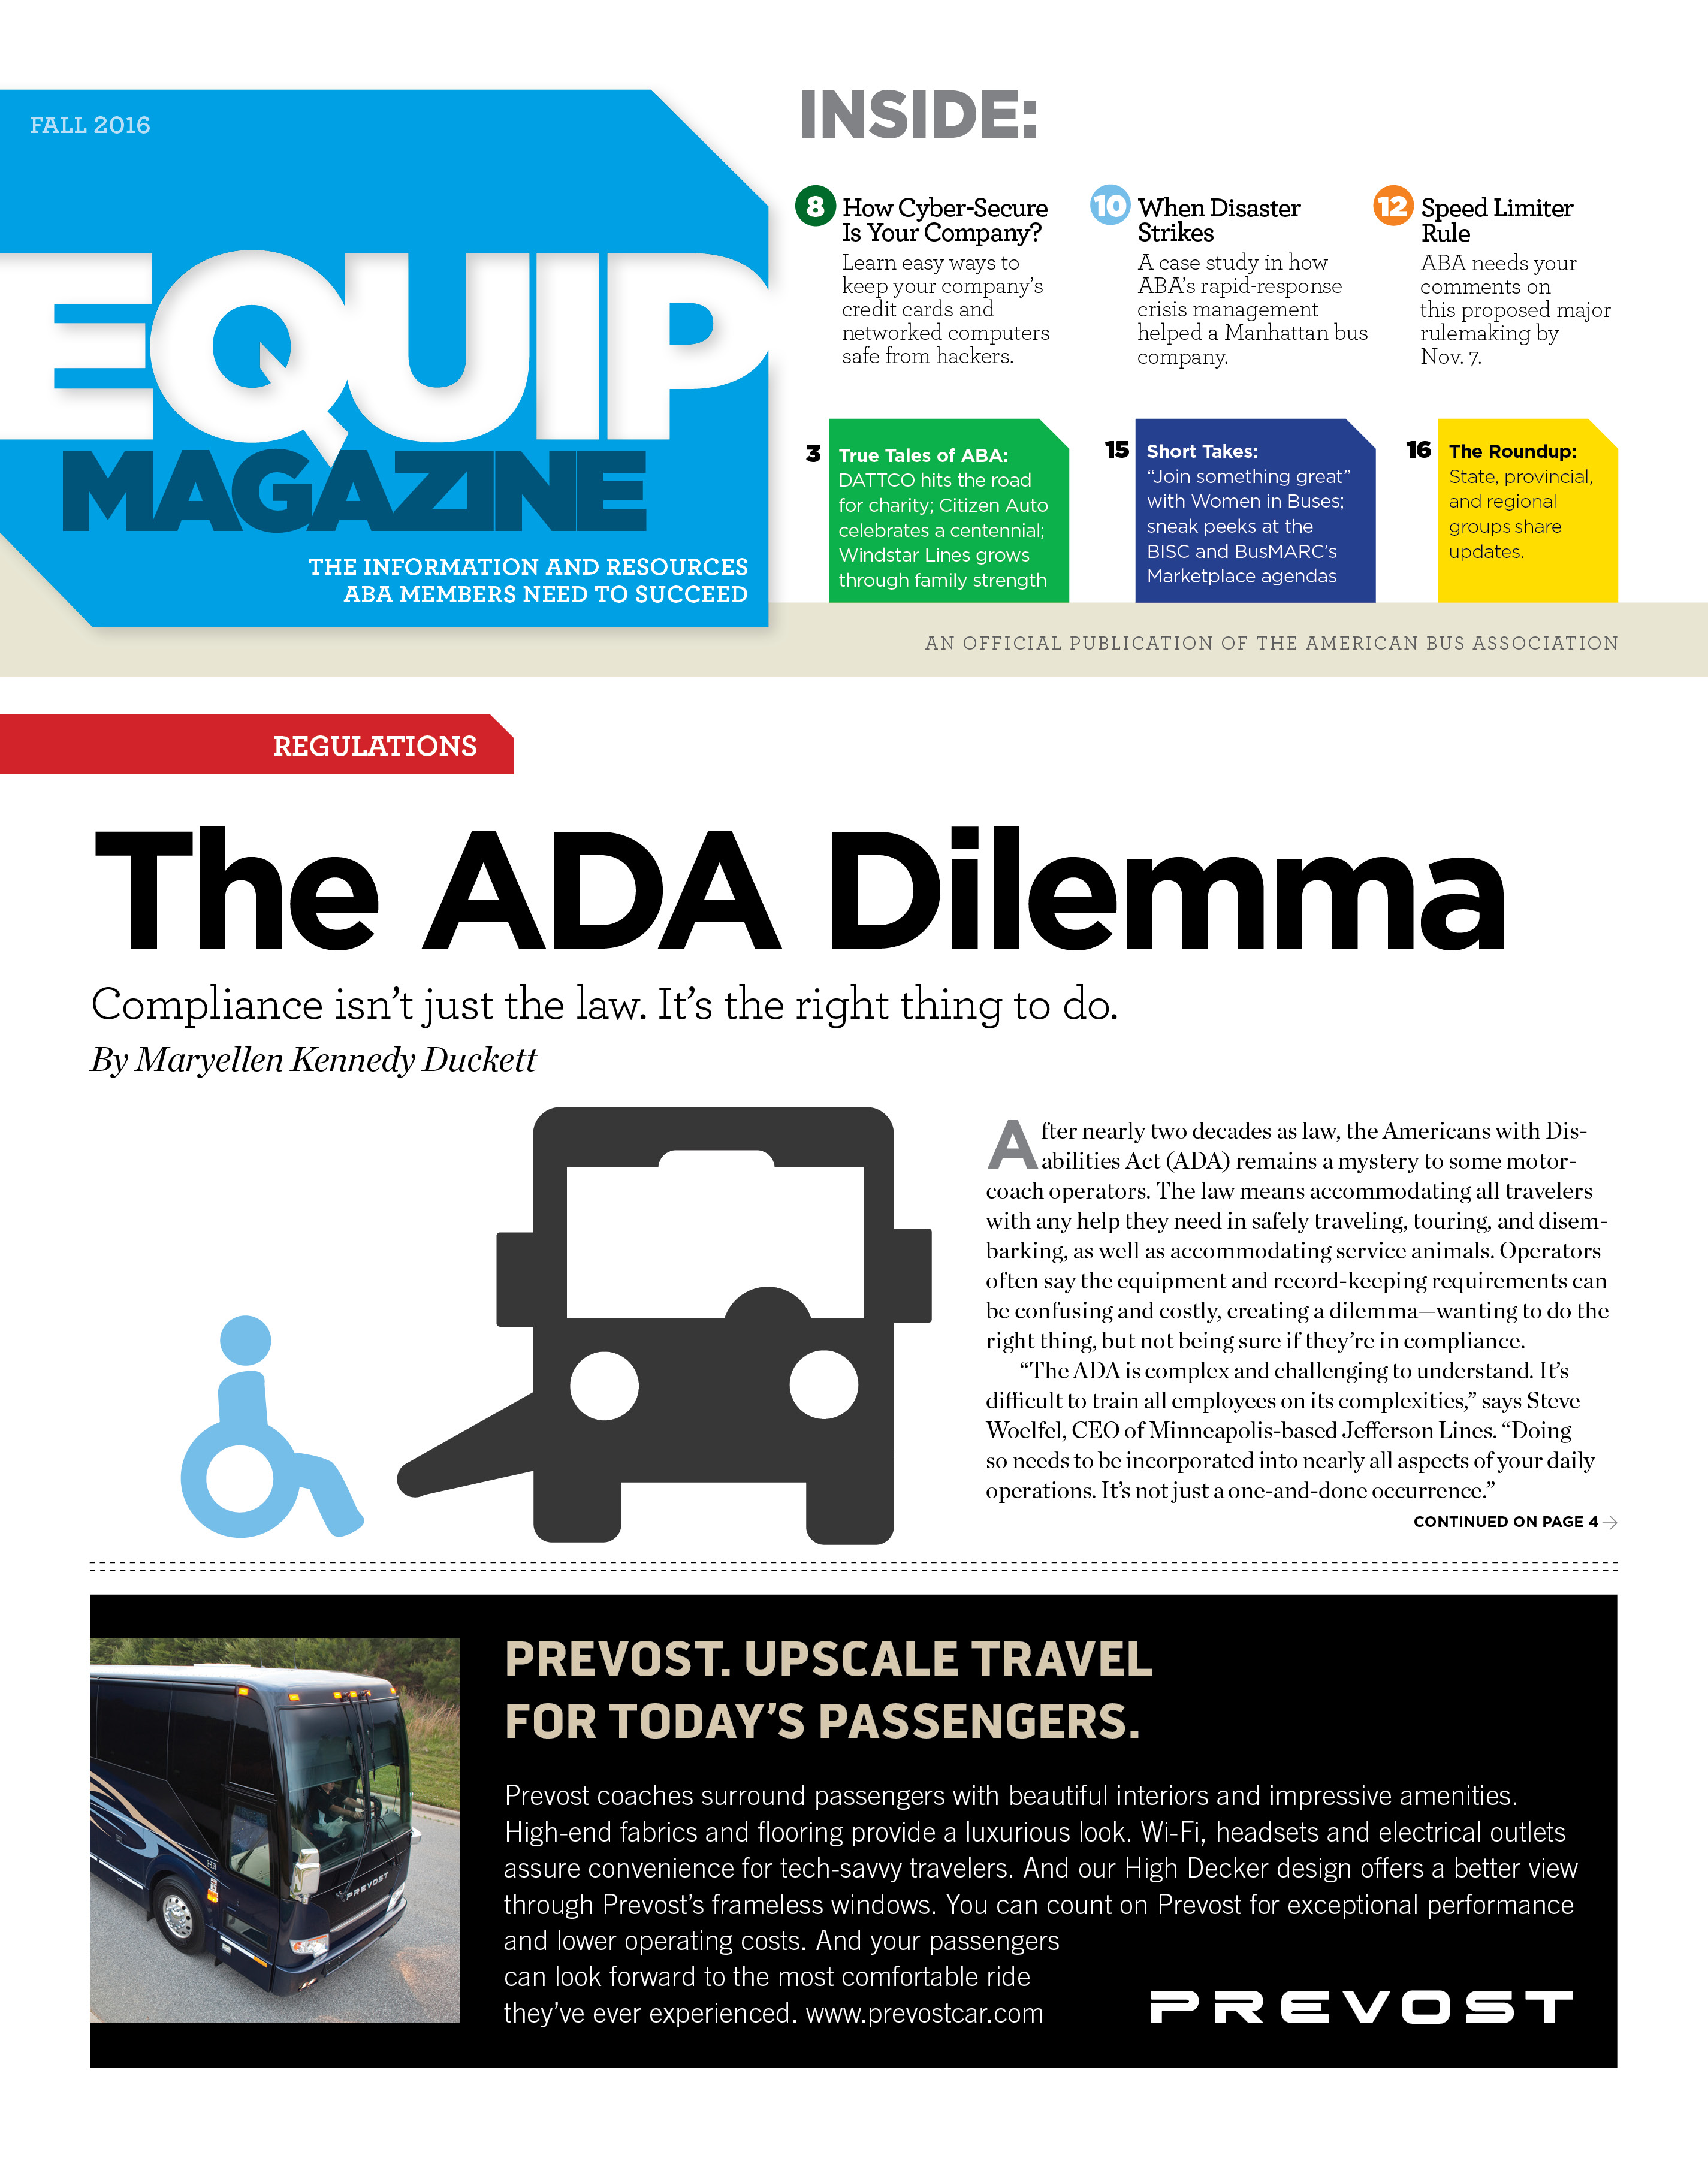 Comprehensive ADA Compliance? Find Out in Latest Issue of